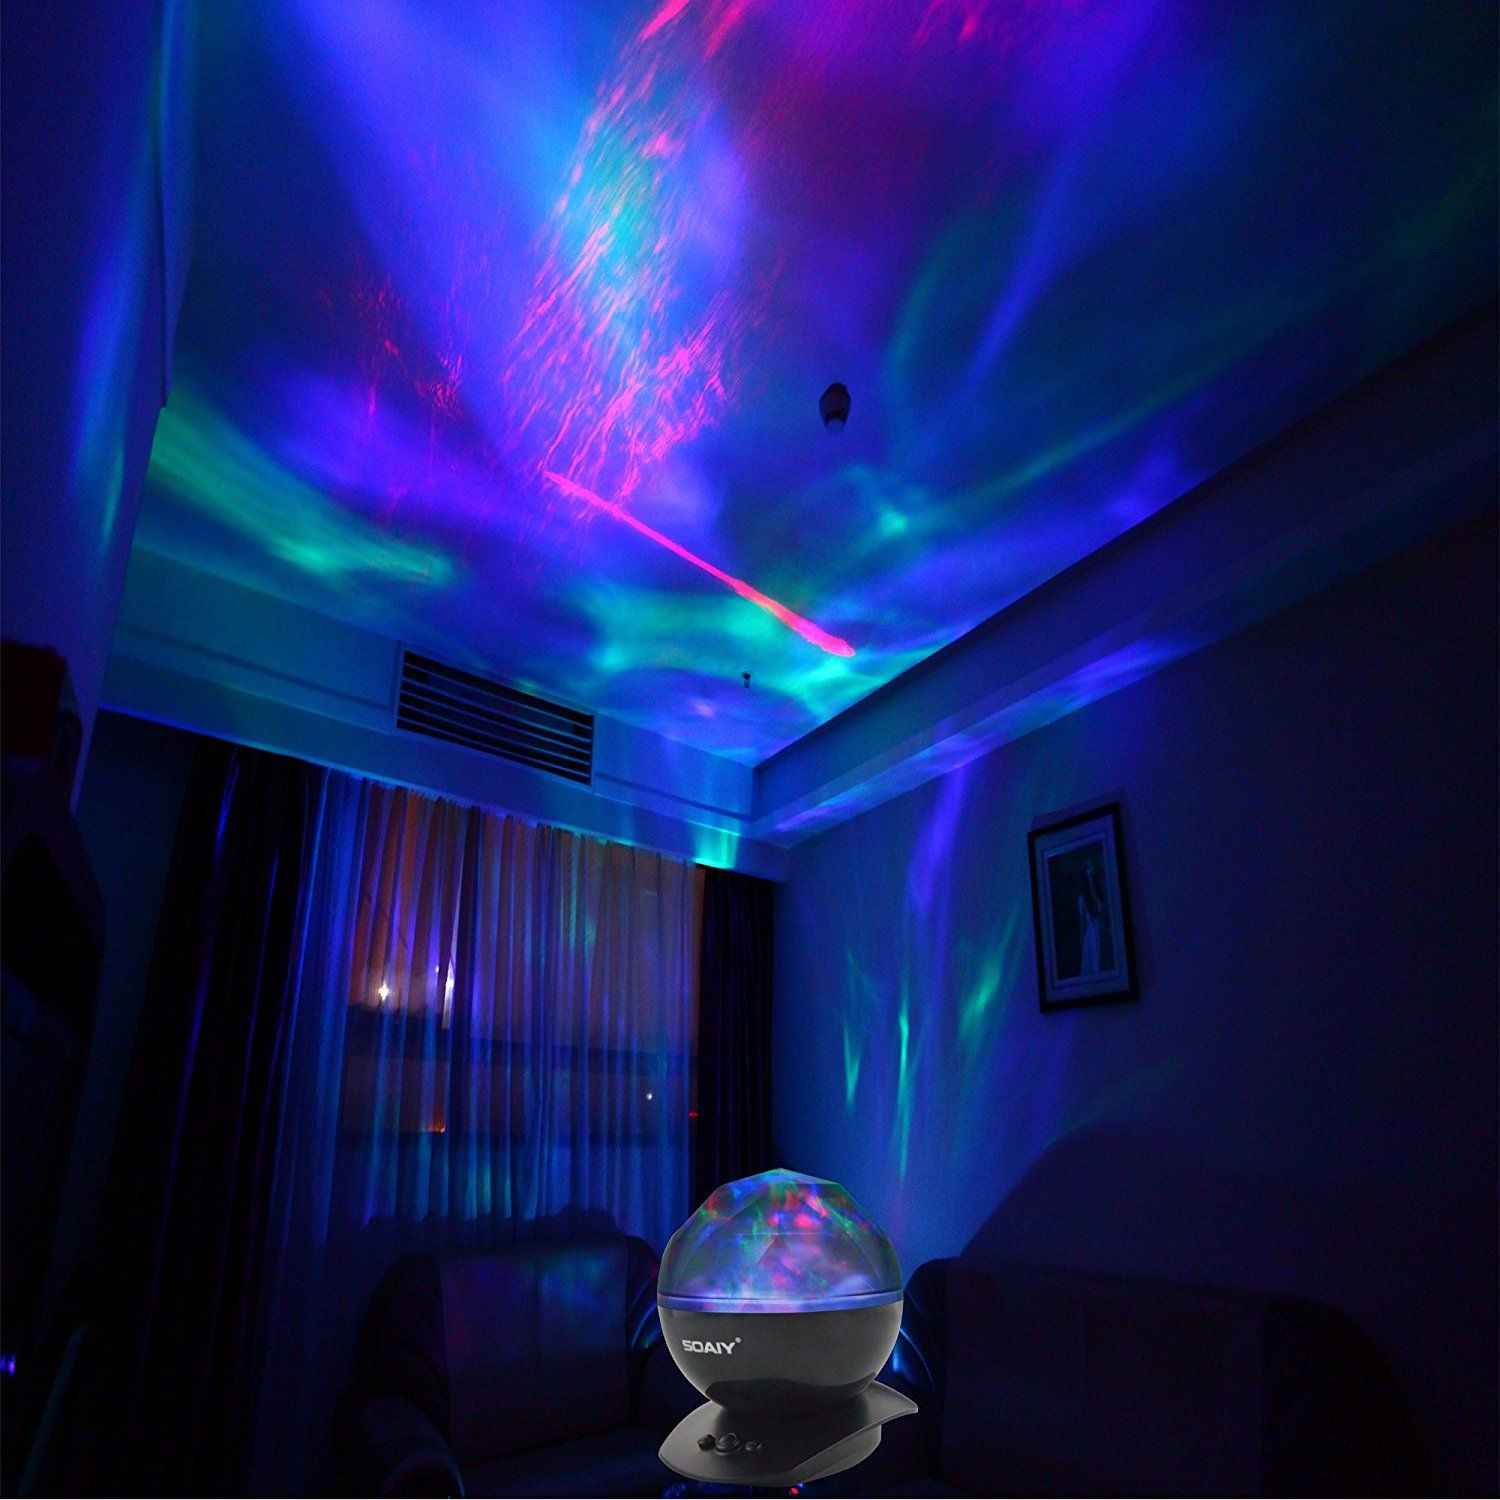 Soaiy Color Changing Led Night Light Lamp Realistic Aurora Star Borealis Projector Perfect For Children And S As Sleep Aid Decorative